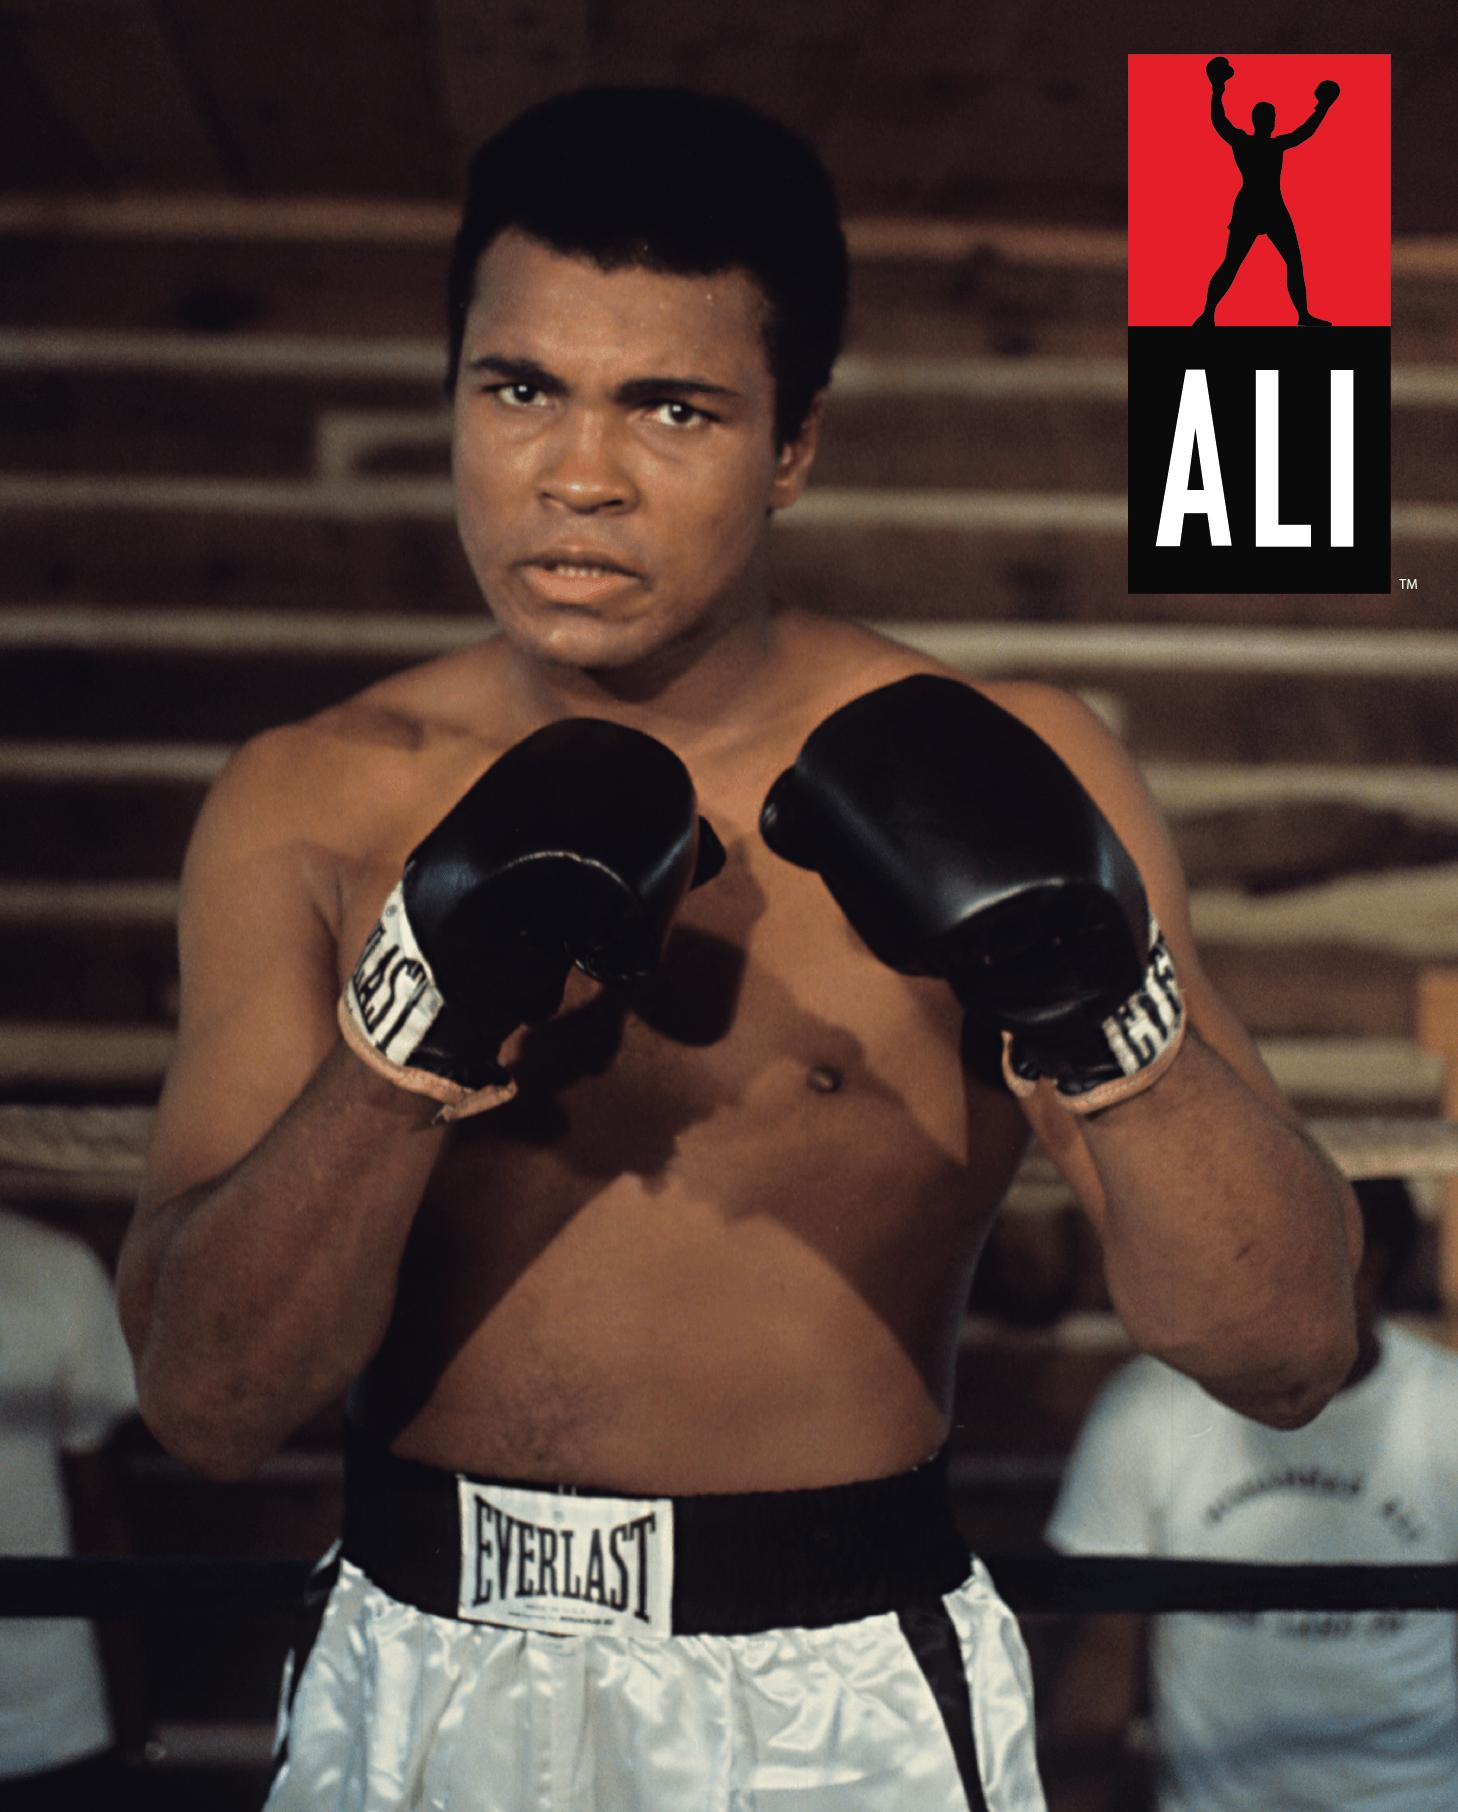 Muhammad Ali Wallpaper Hd For Android Apk Download